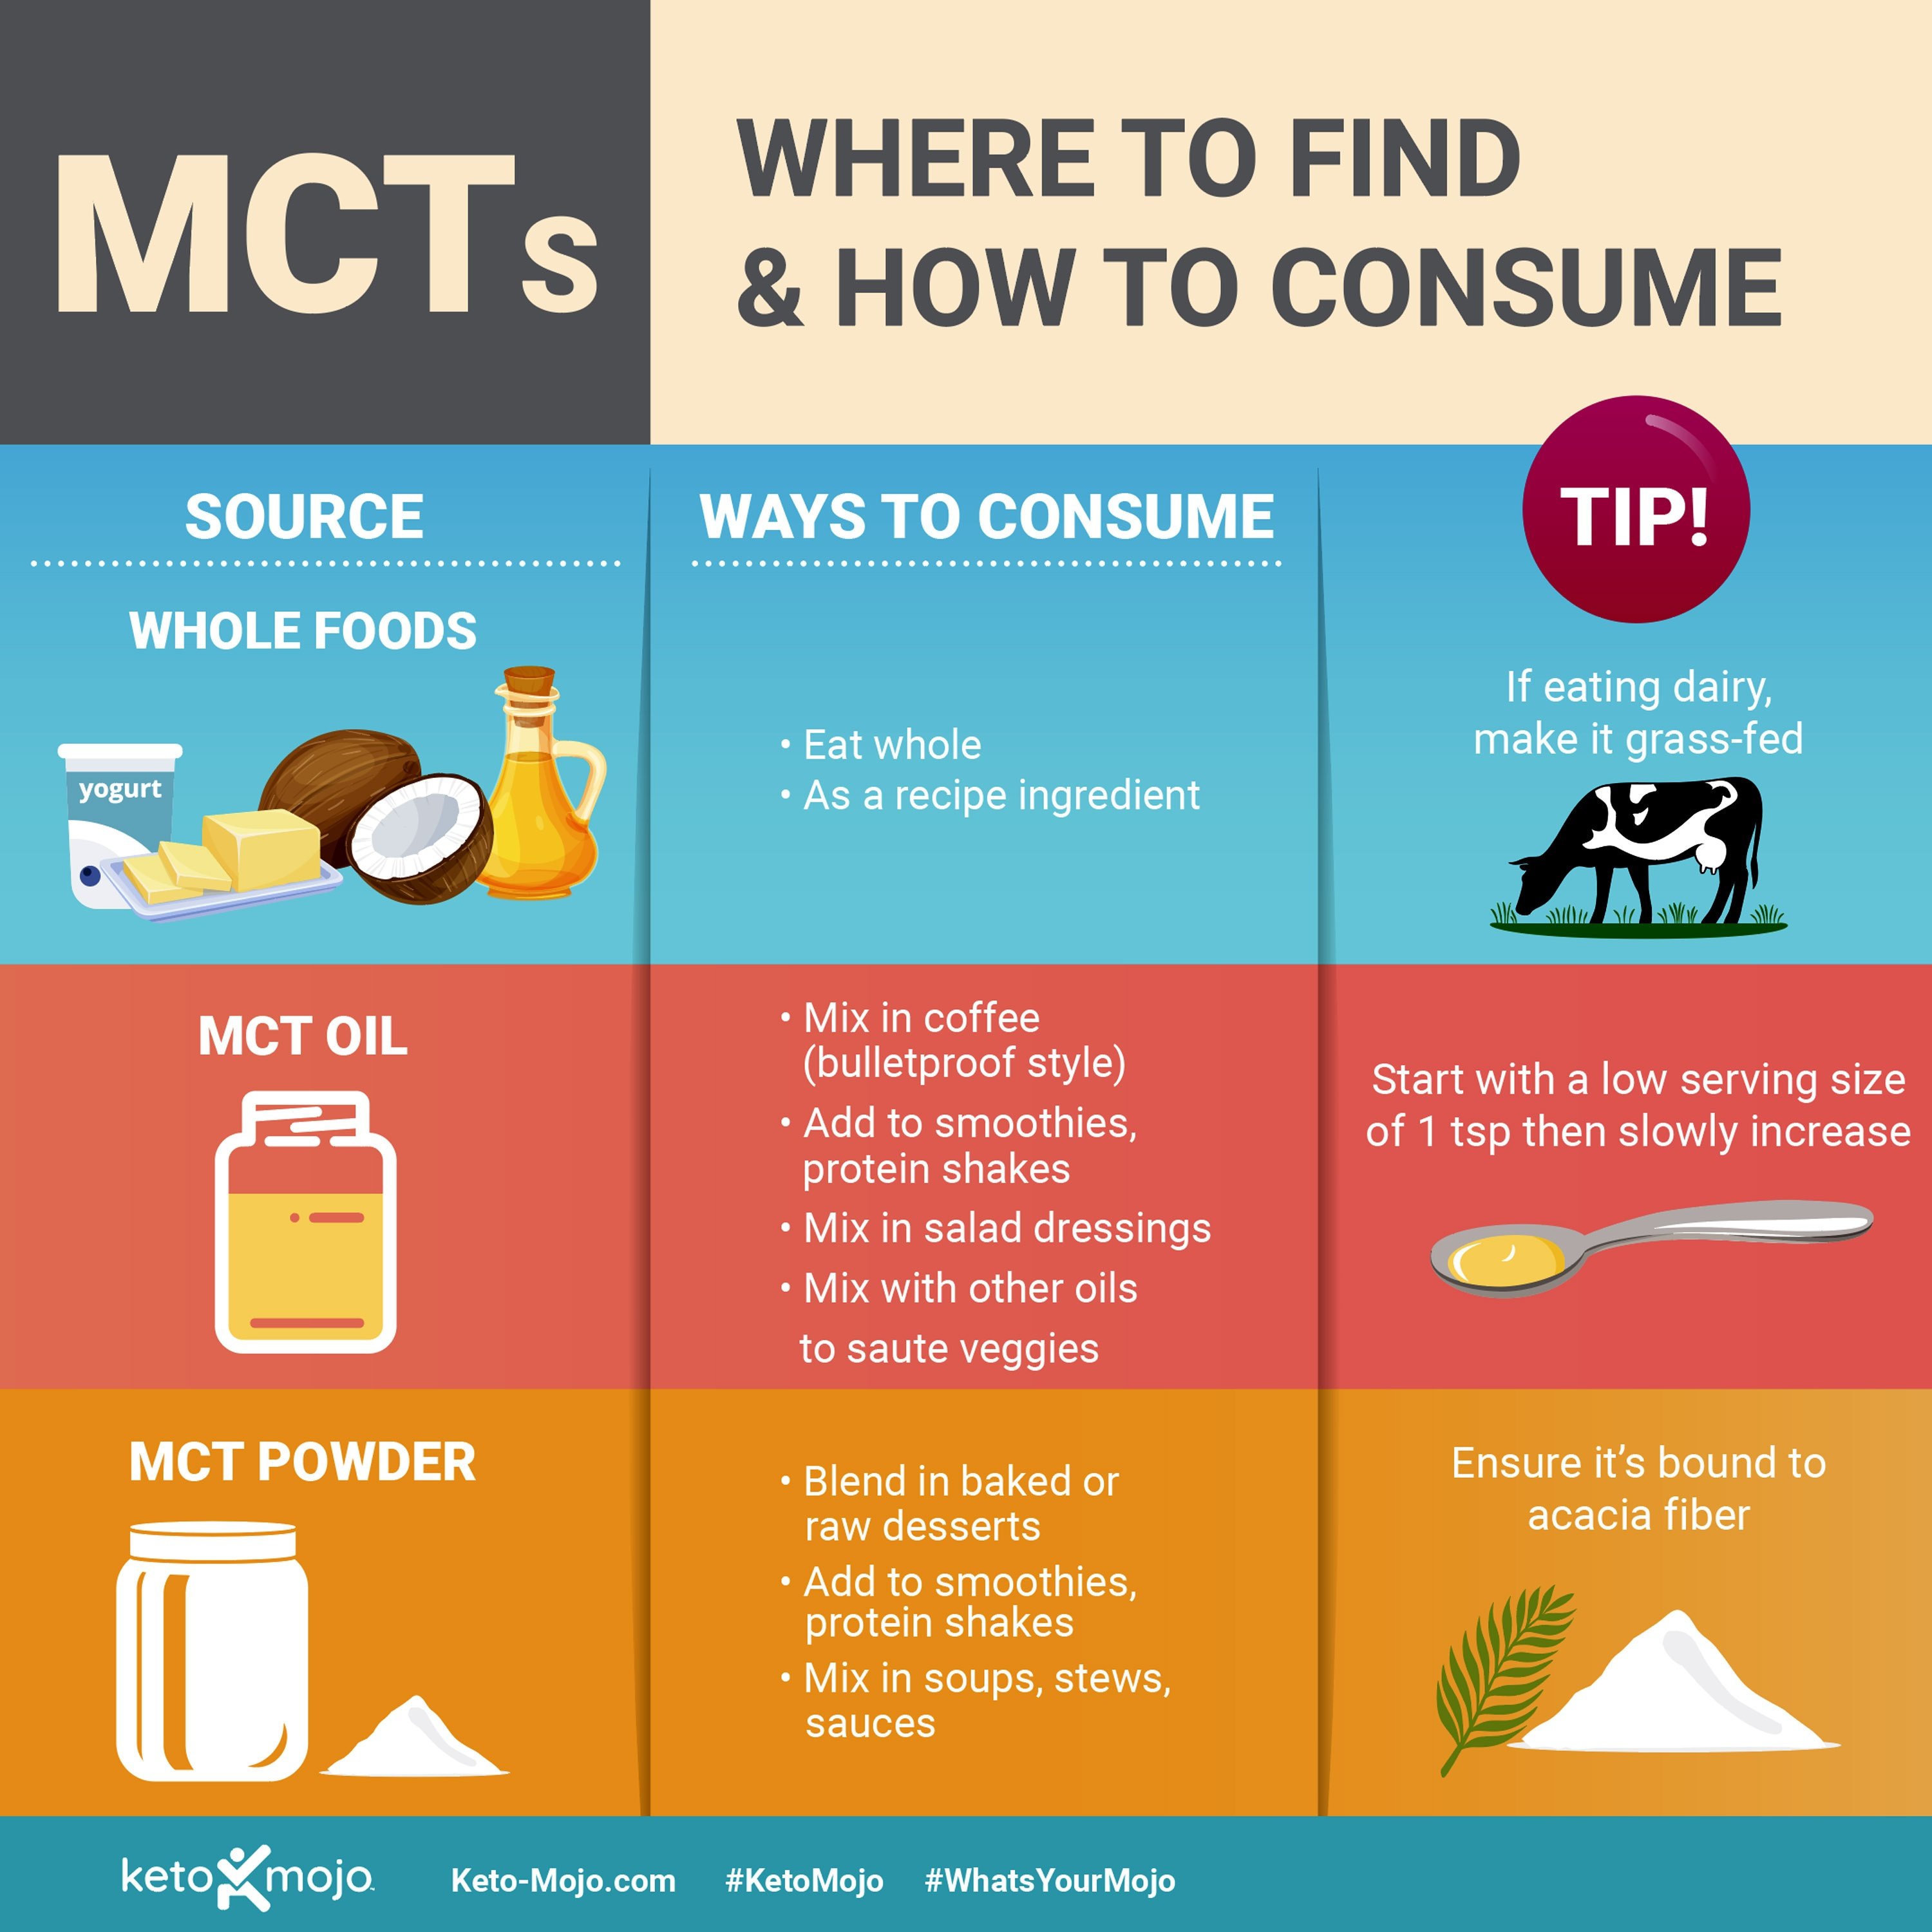 Keto-Mojo: Where to find and how to consume MCT's